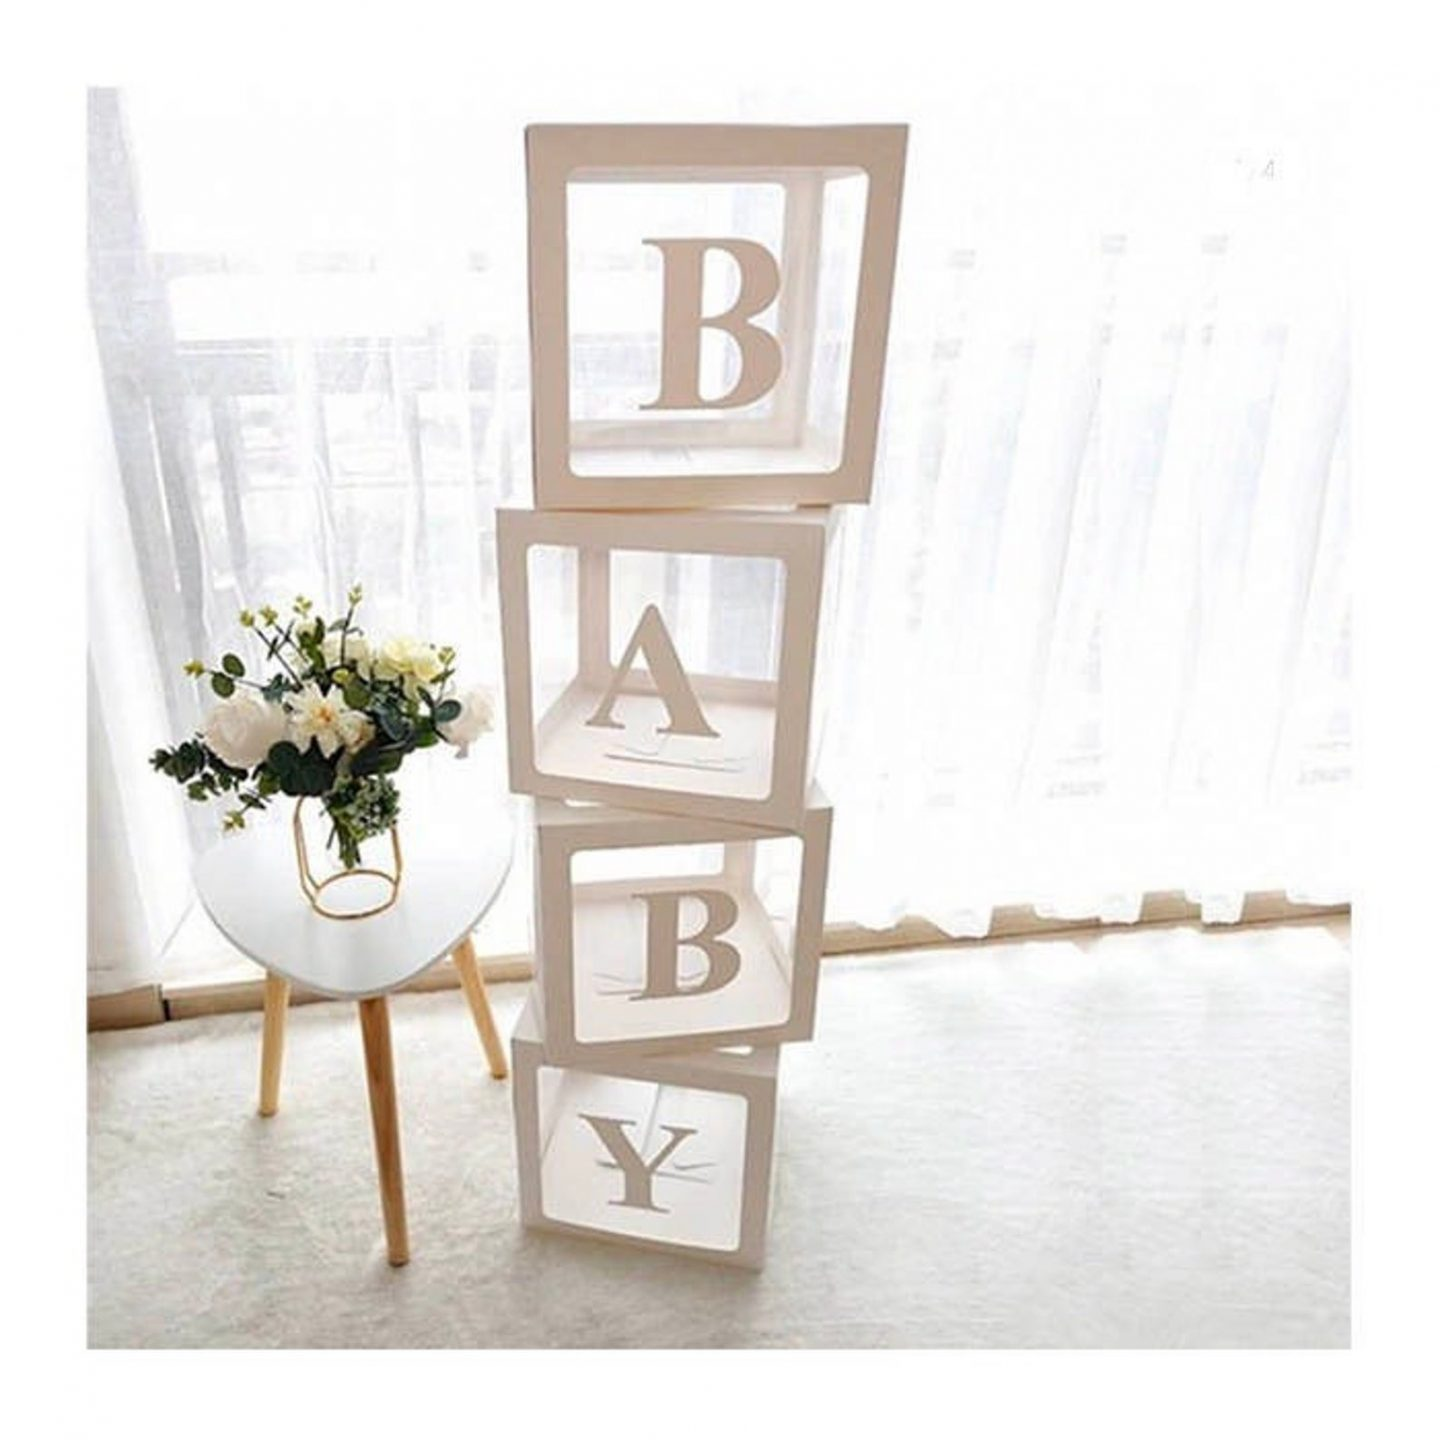 White Transparent BABY Boxes for baby shower